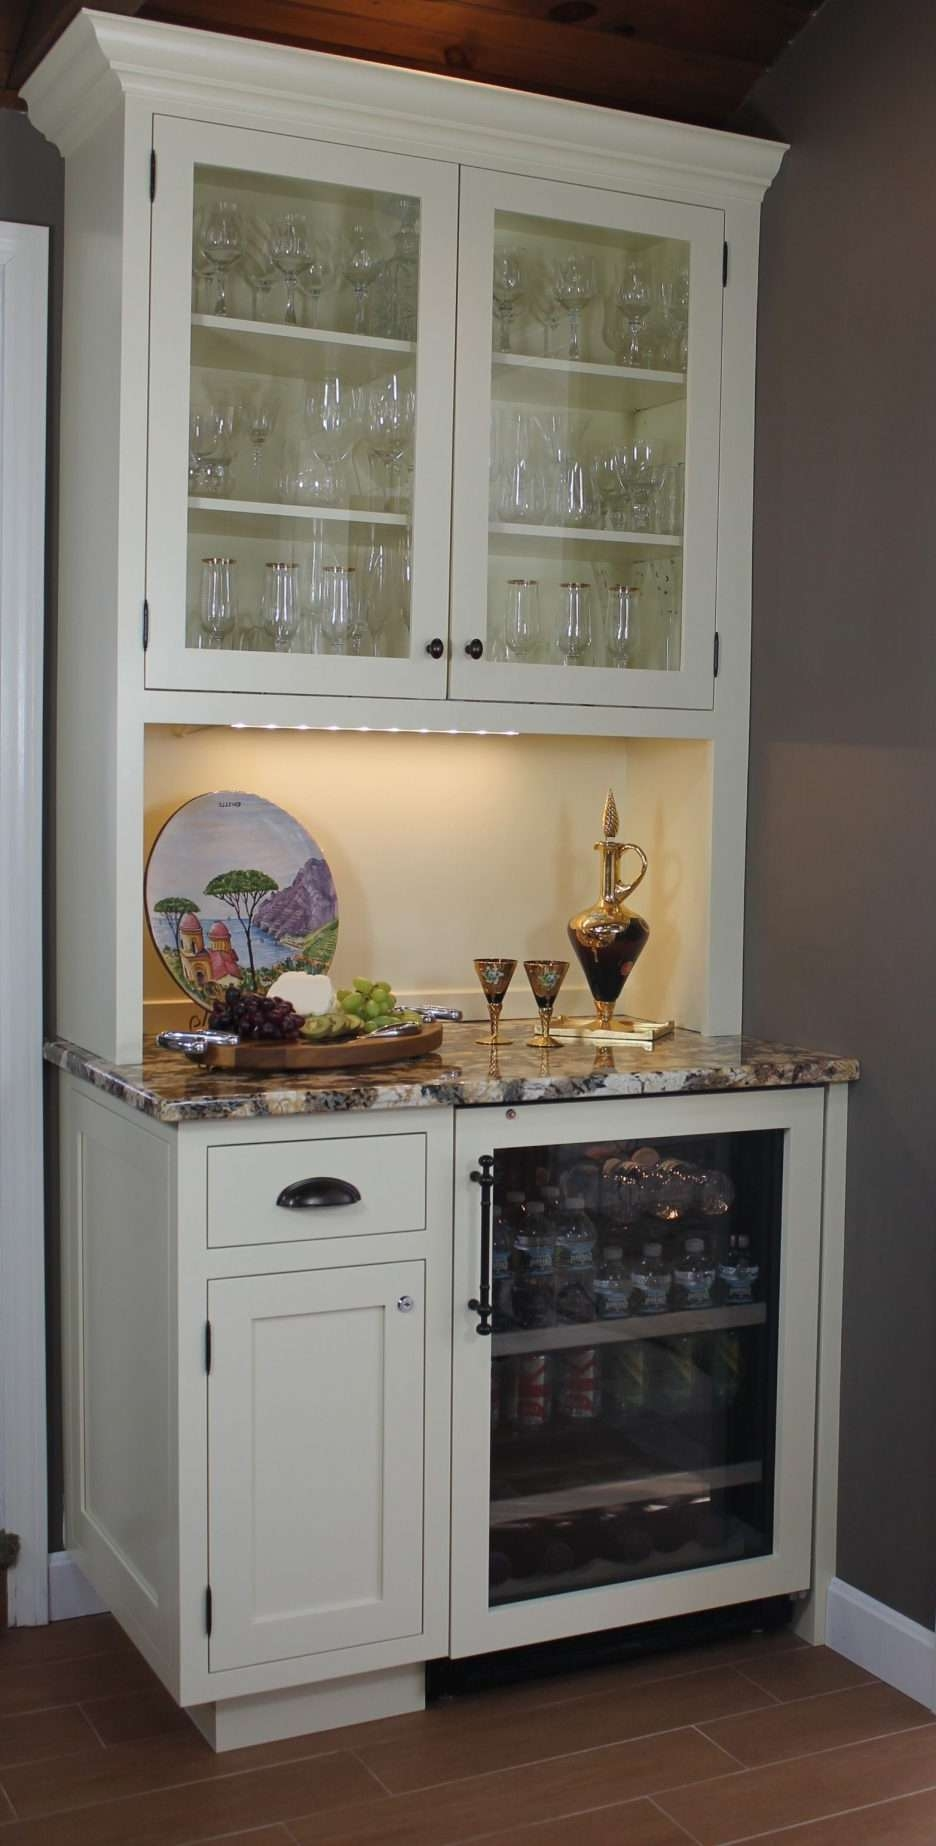 Skinny Sideboard Kitchen Sideboards And Buffets Small Kitchen Regarding Kitchen Sideboards Buffets (View 18 of 20)